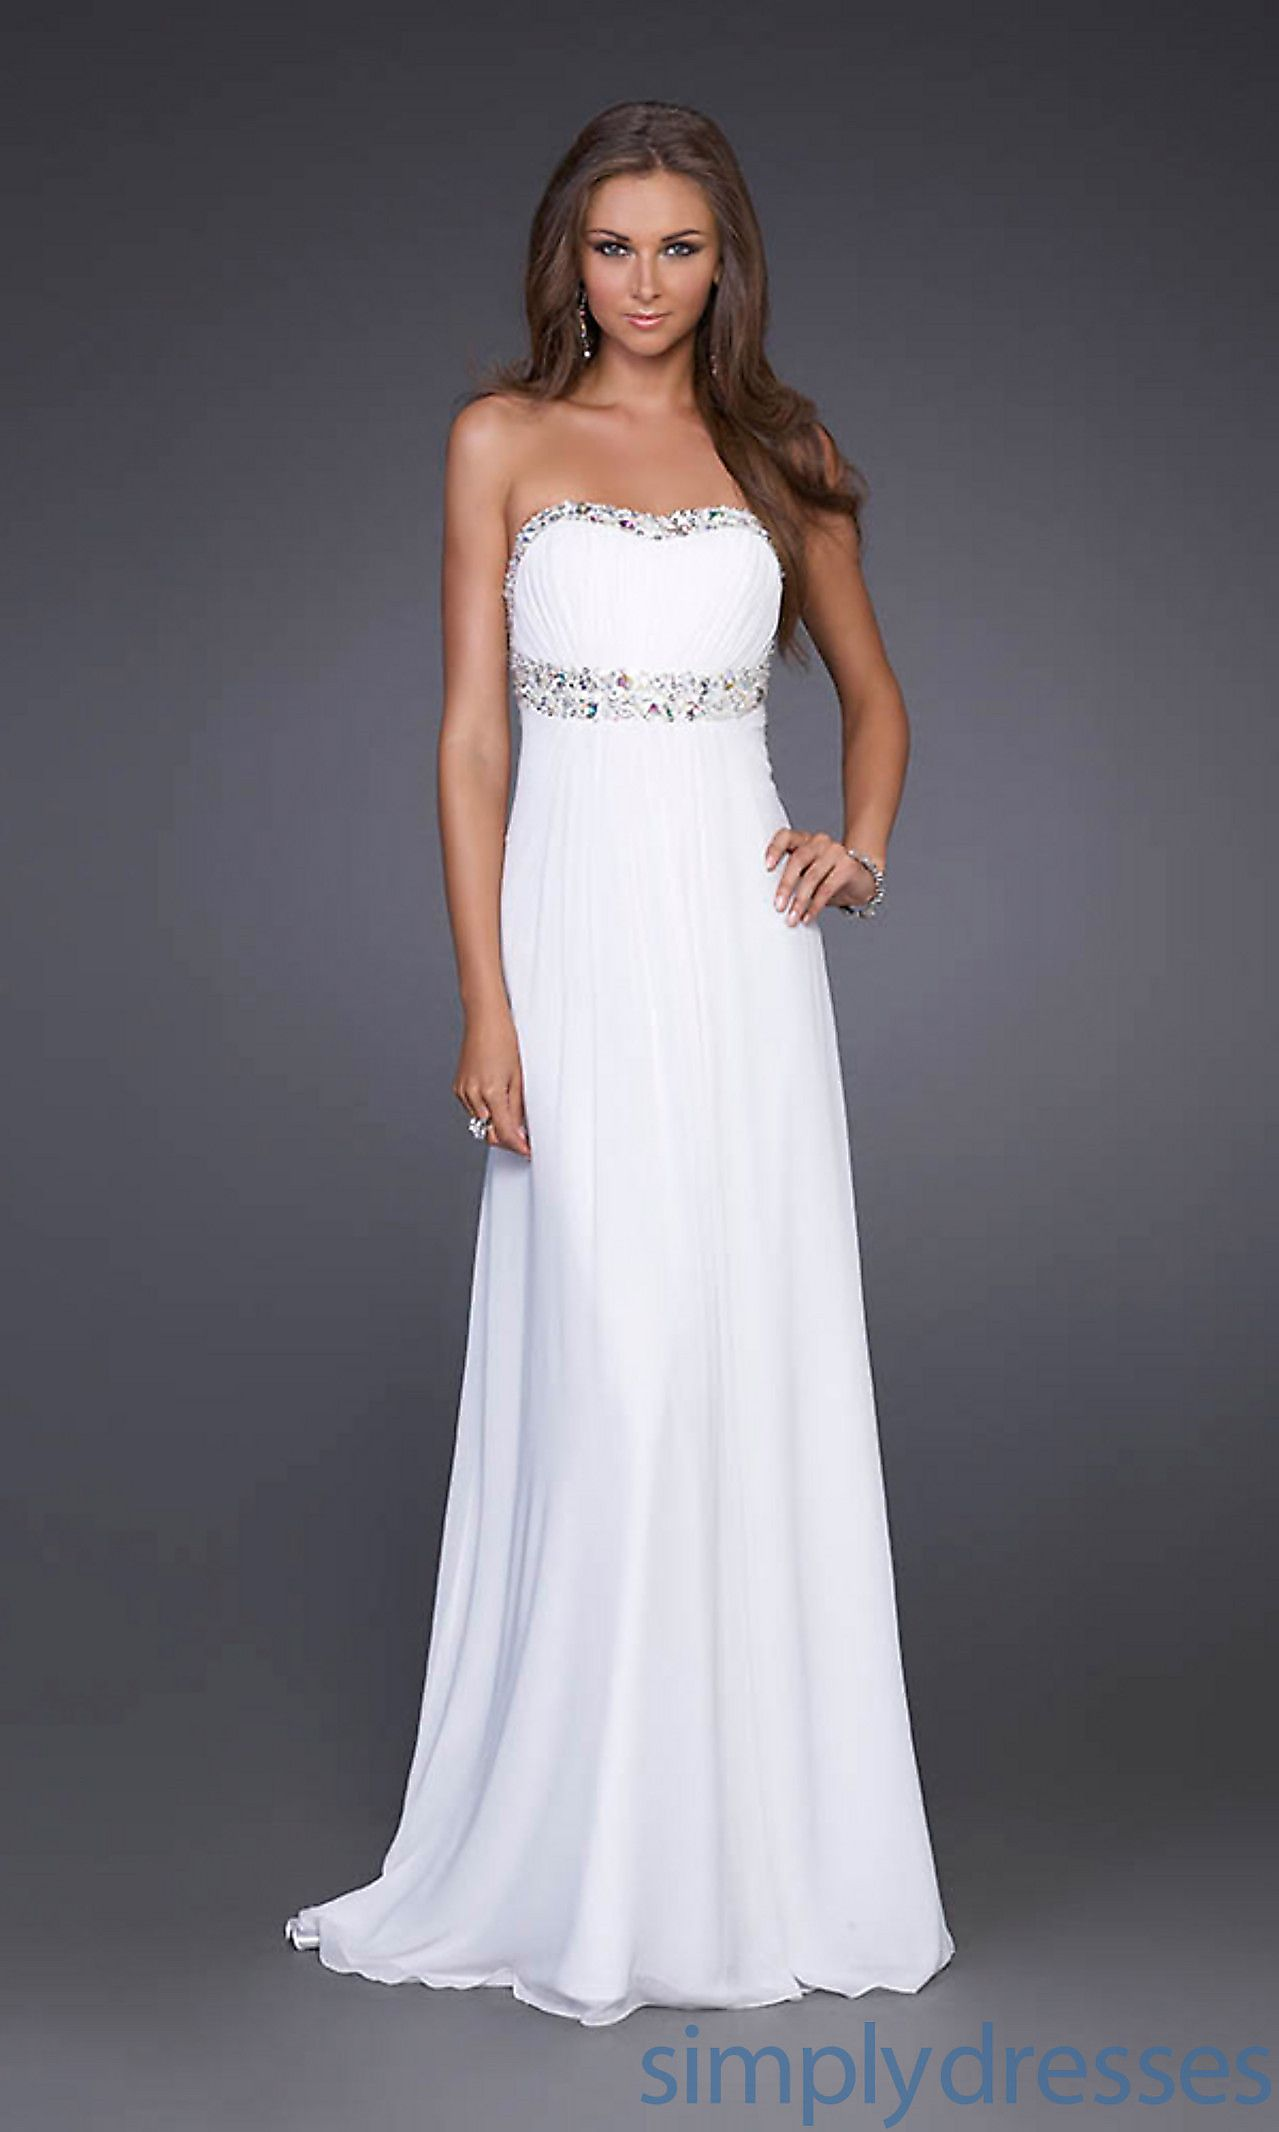 1000  images about White Dresses on Pinterest  Chiffon evening ...